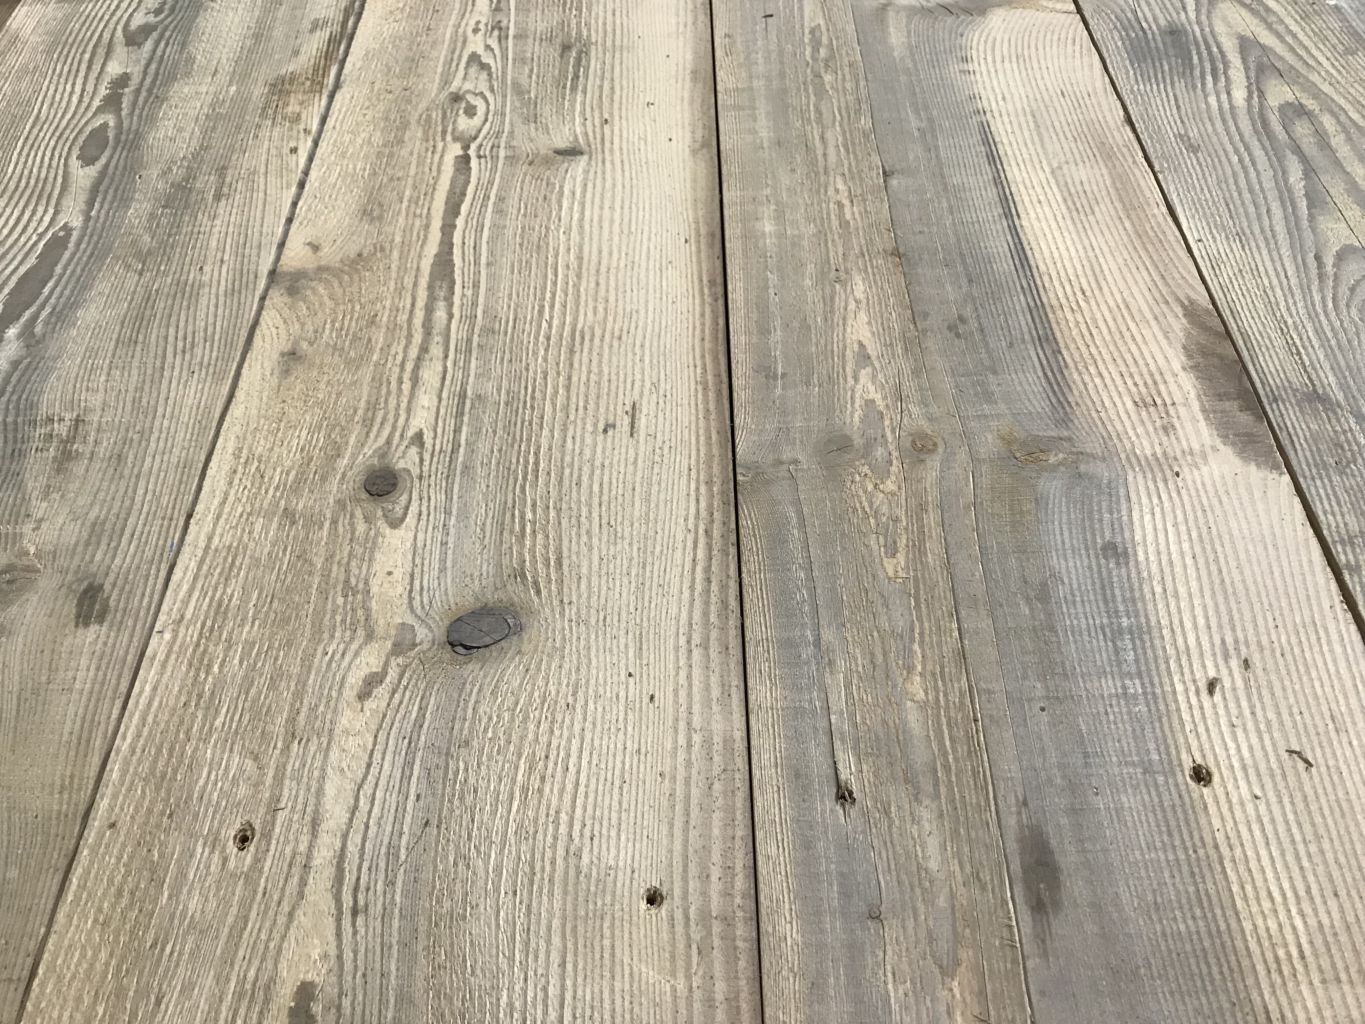 Old Reclaimed Pine Floorboards Prepared Ready To Lay